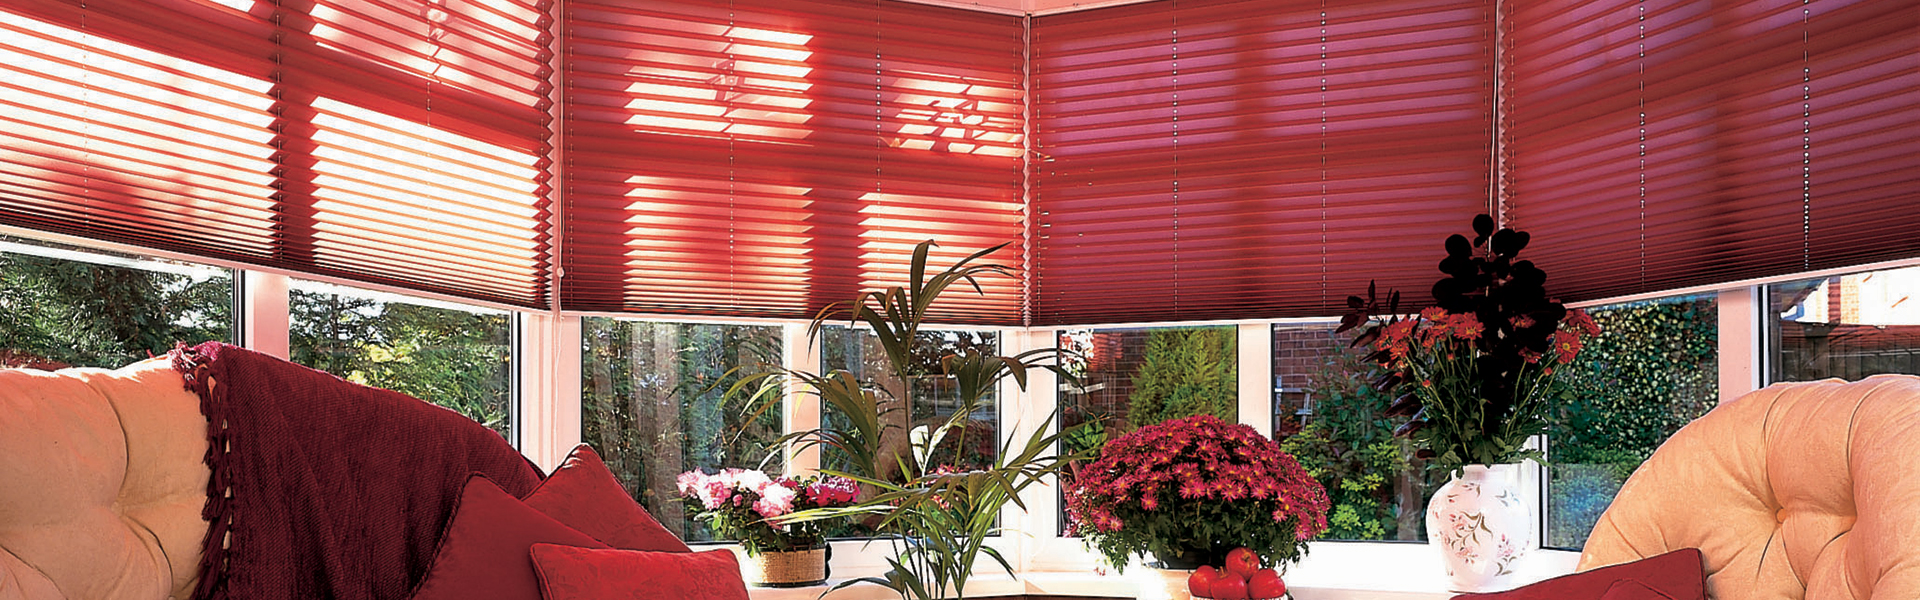 conservatory-window-blinds-hero-4